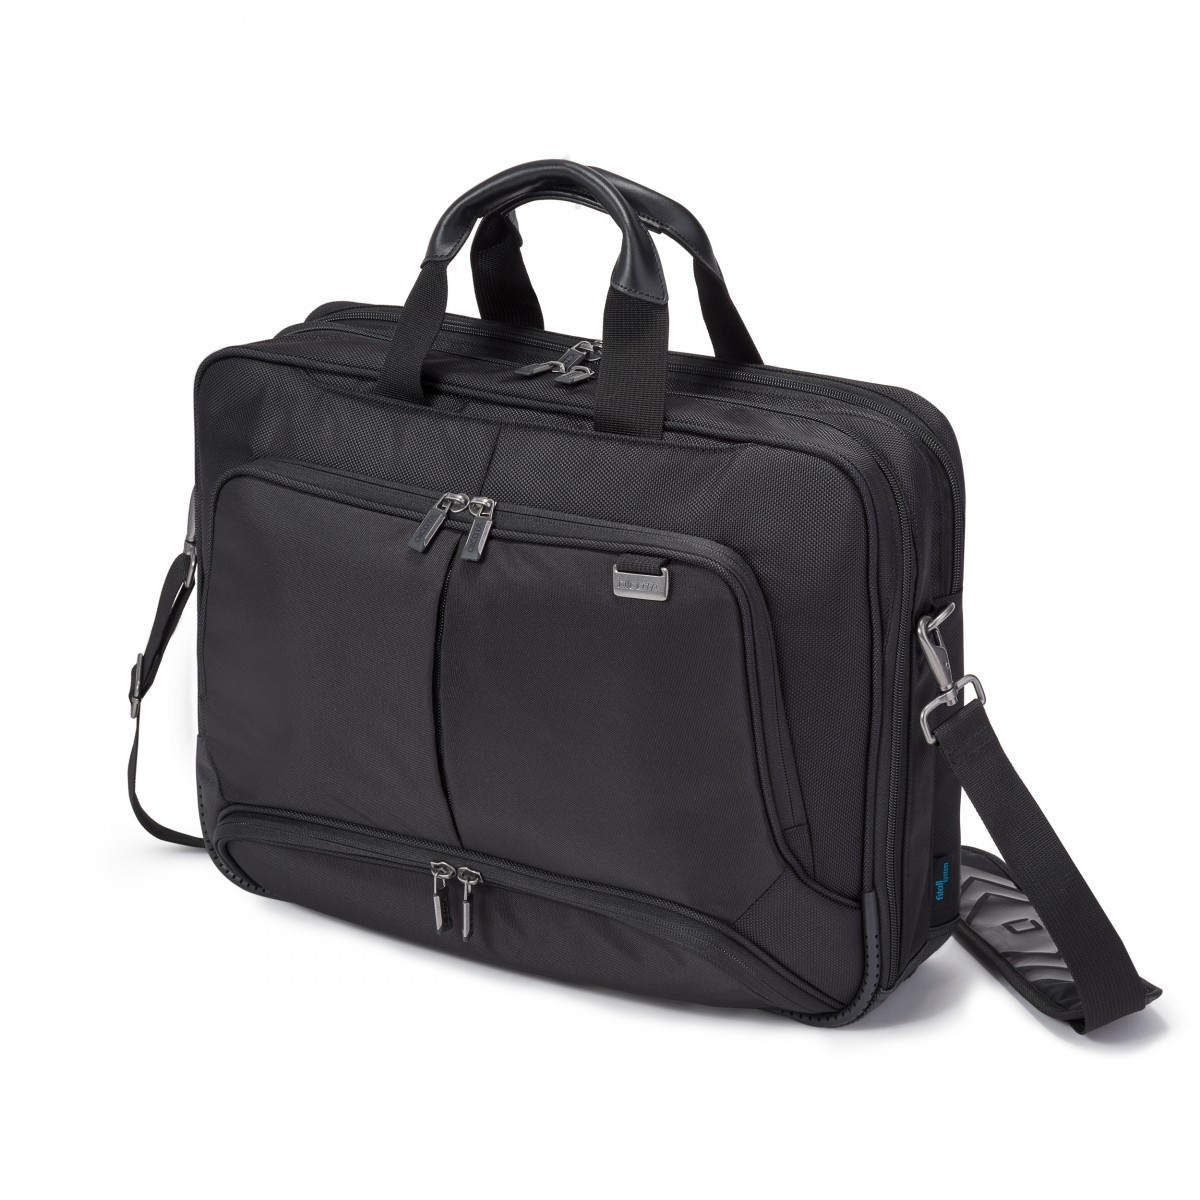 geanta notebook D30845 Top Traveller PRO 15-17.3 inch